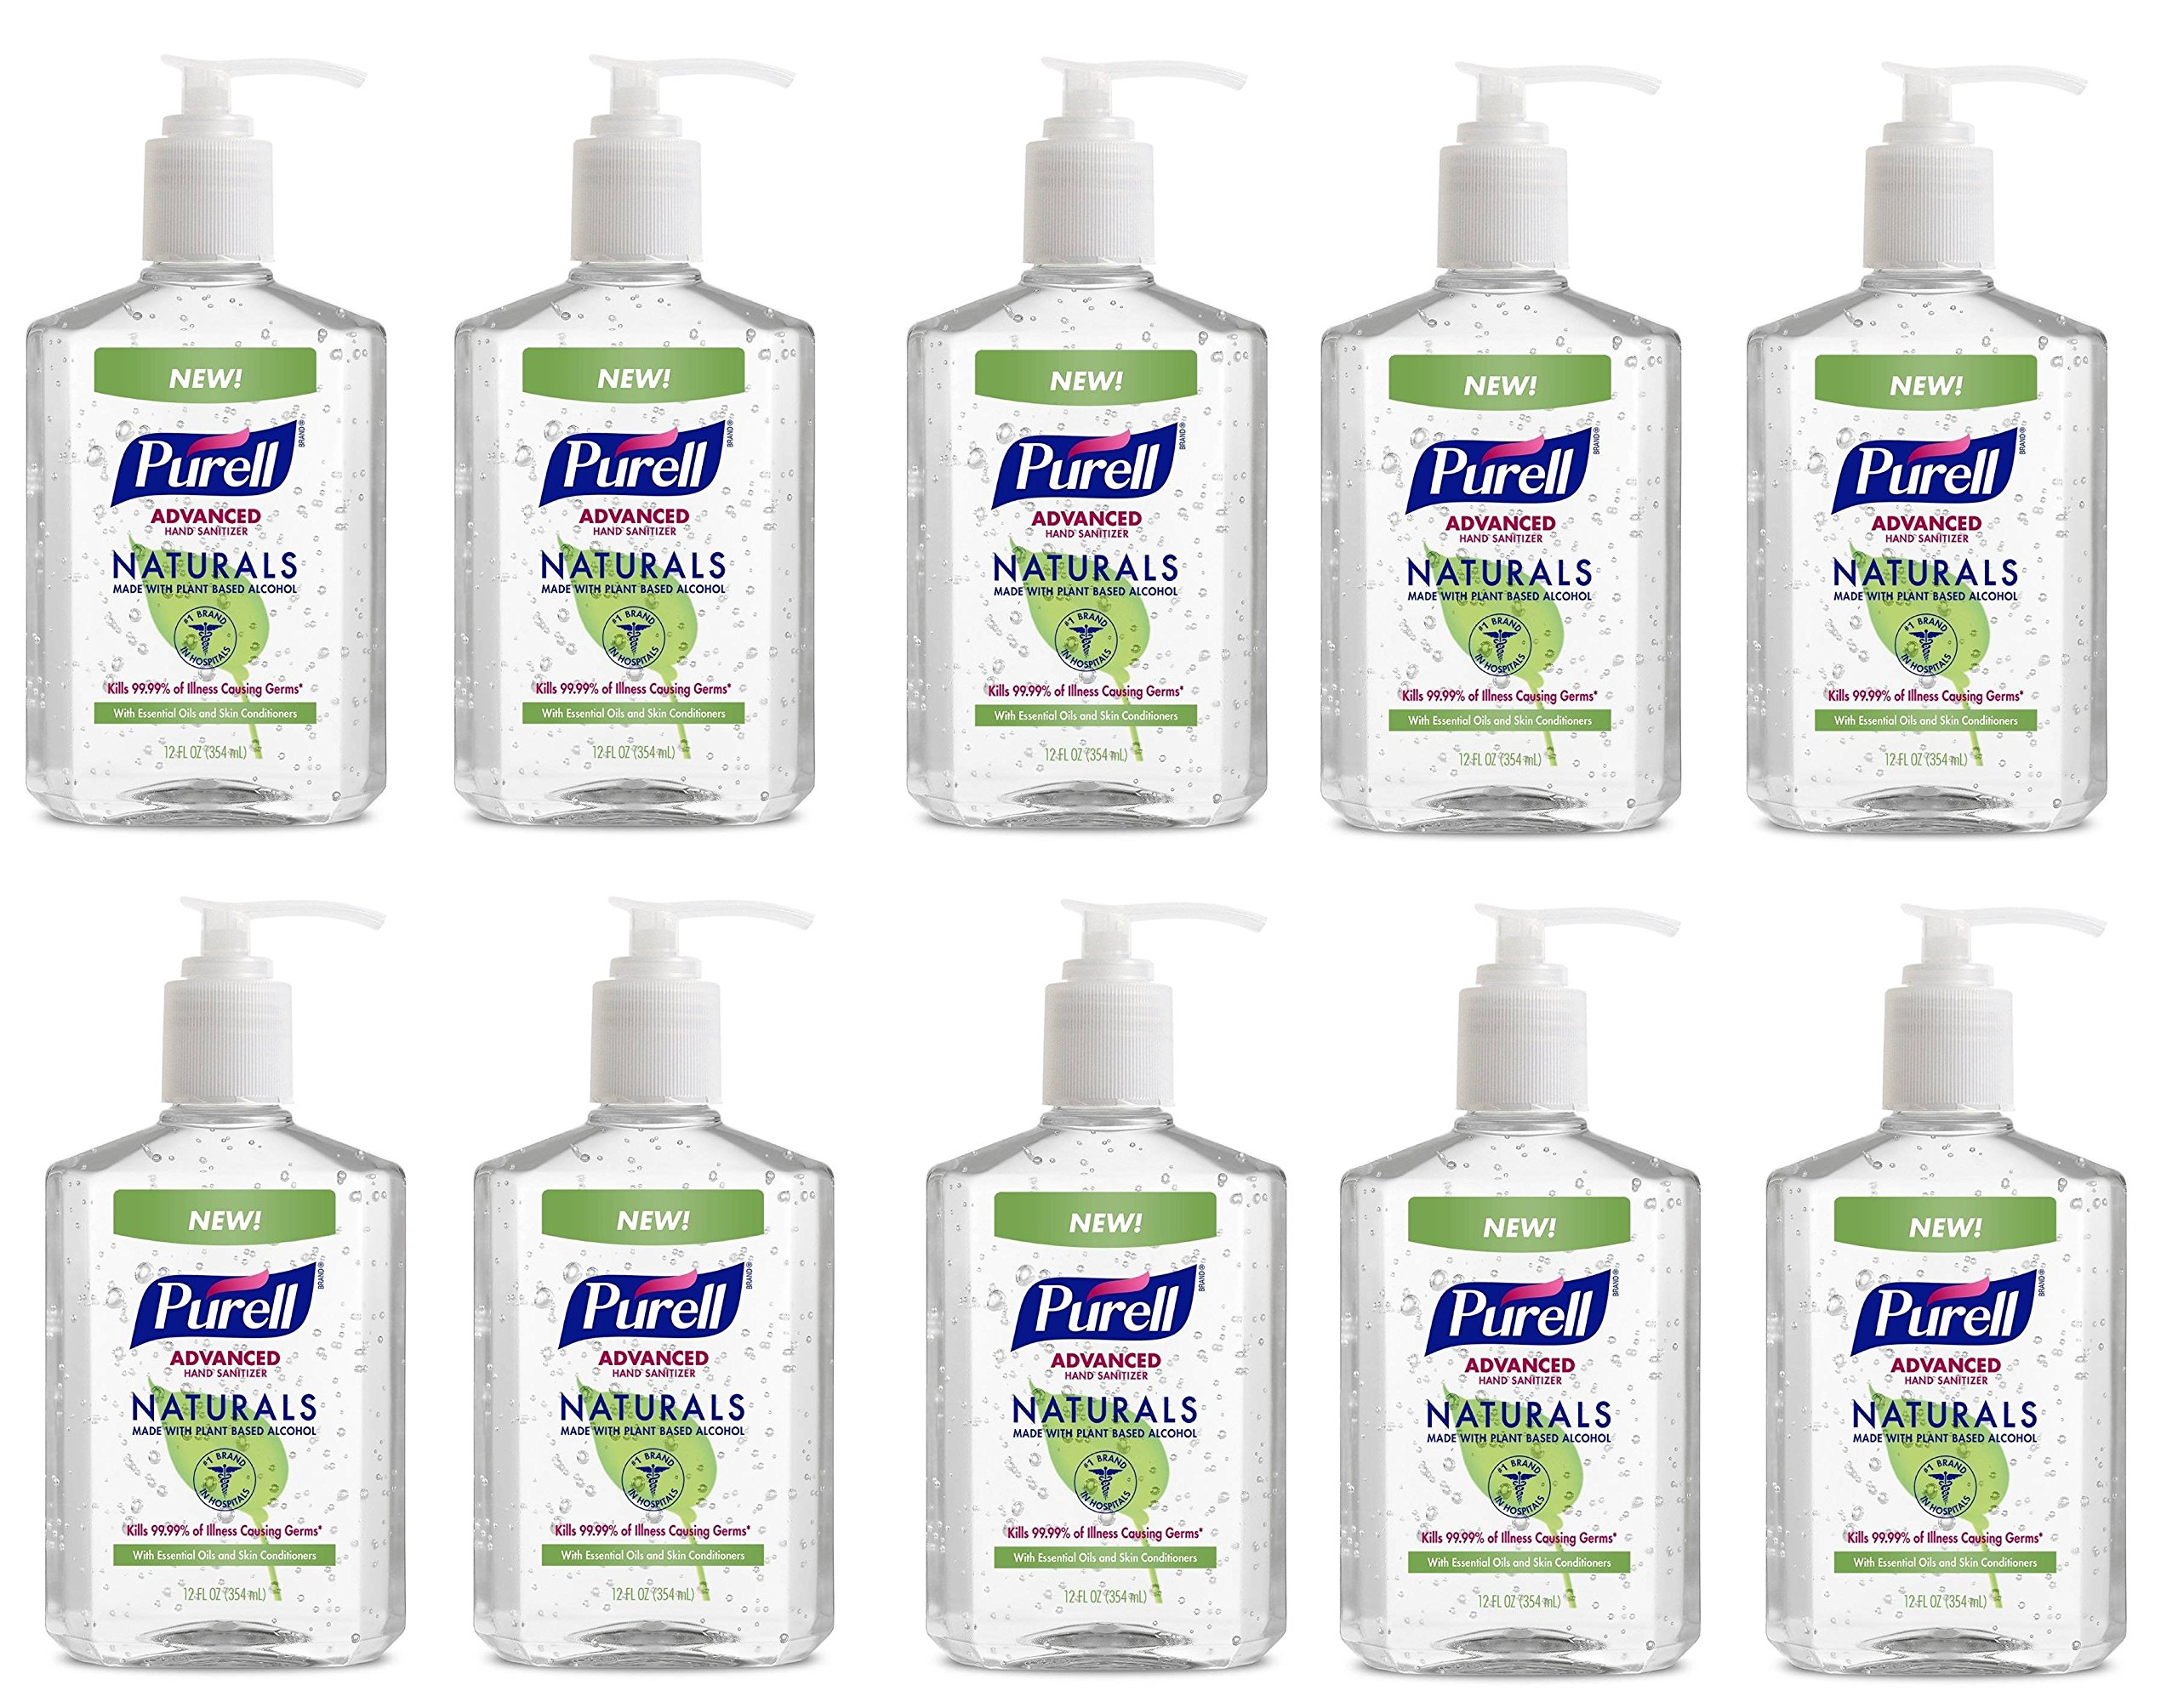 PURELL Advanced Hand Sanitizer NATURALS 12oz Pump Bottle QBiDeG, 10 Bottles by Purell